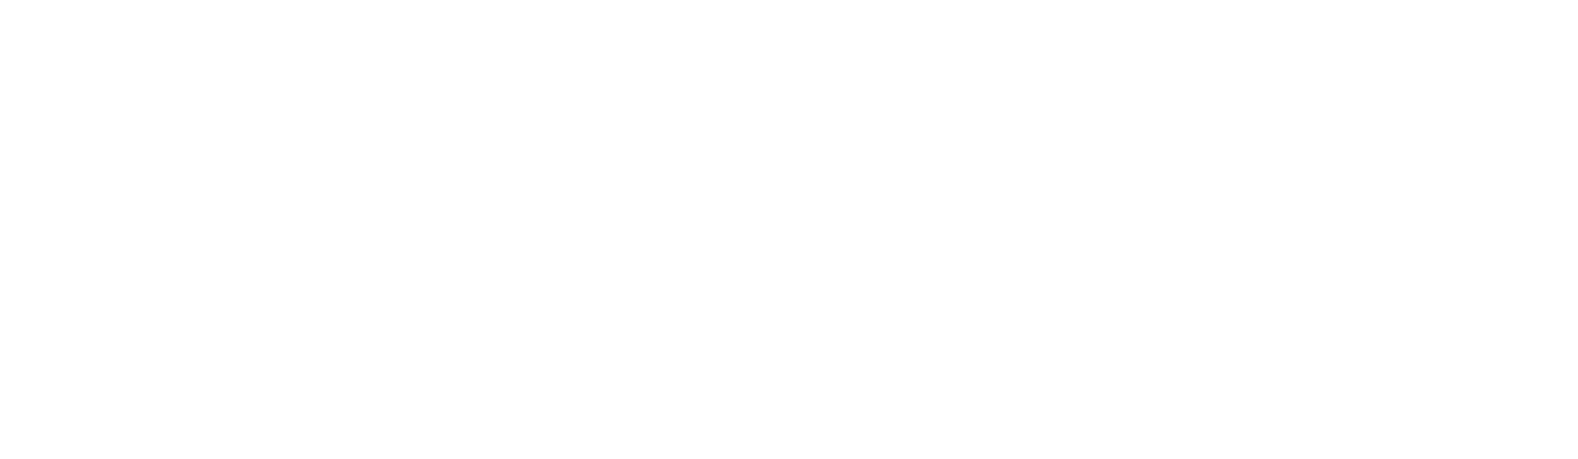 HiWire Logo with AEC and TM.png